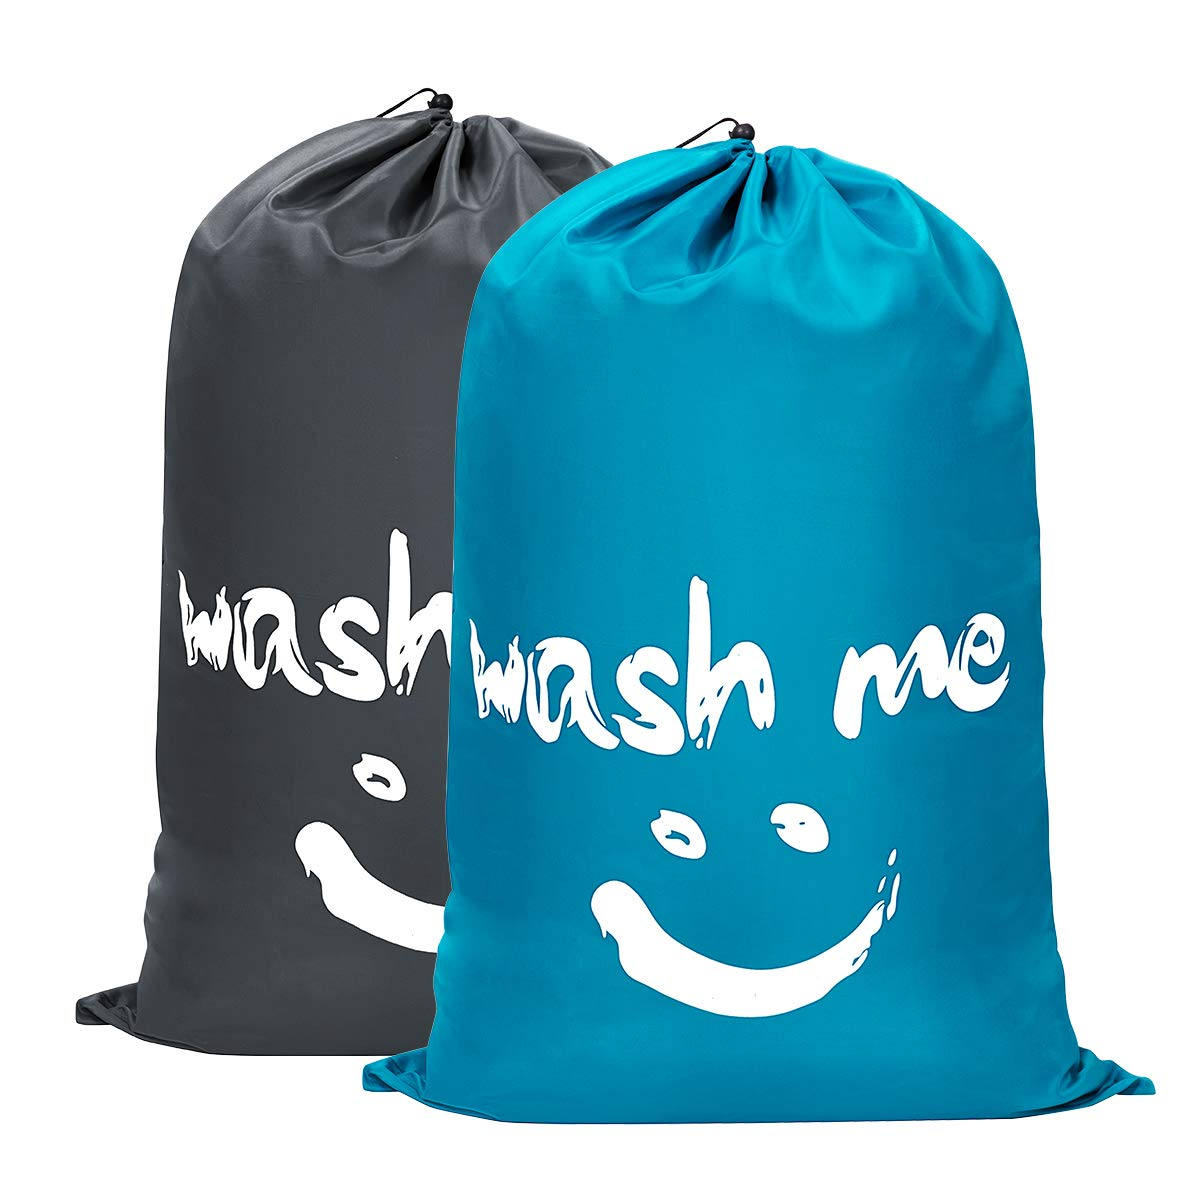 Great laundry bags for travel